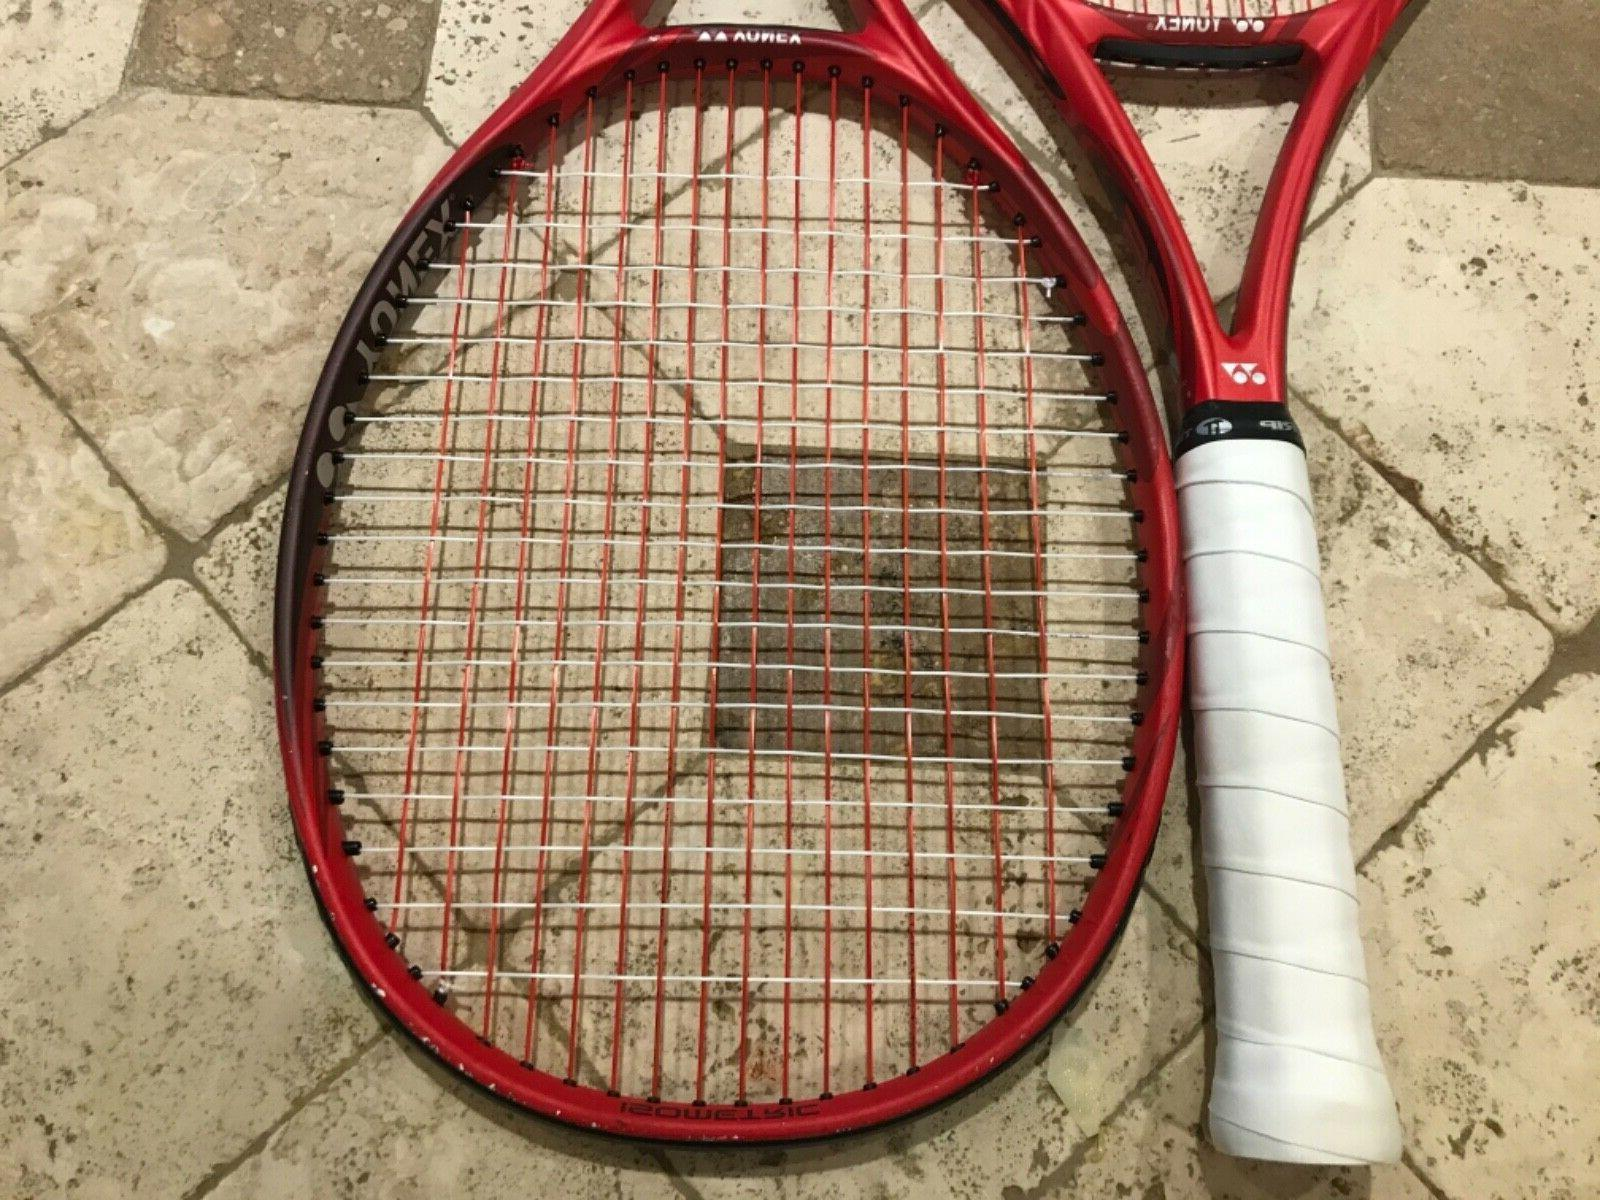 Up to VCORE 98 Red Racquets Rackets